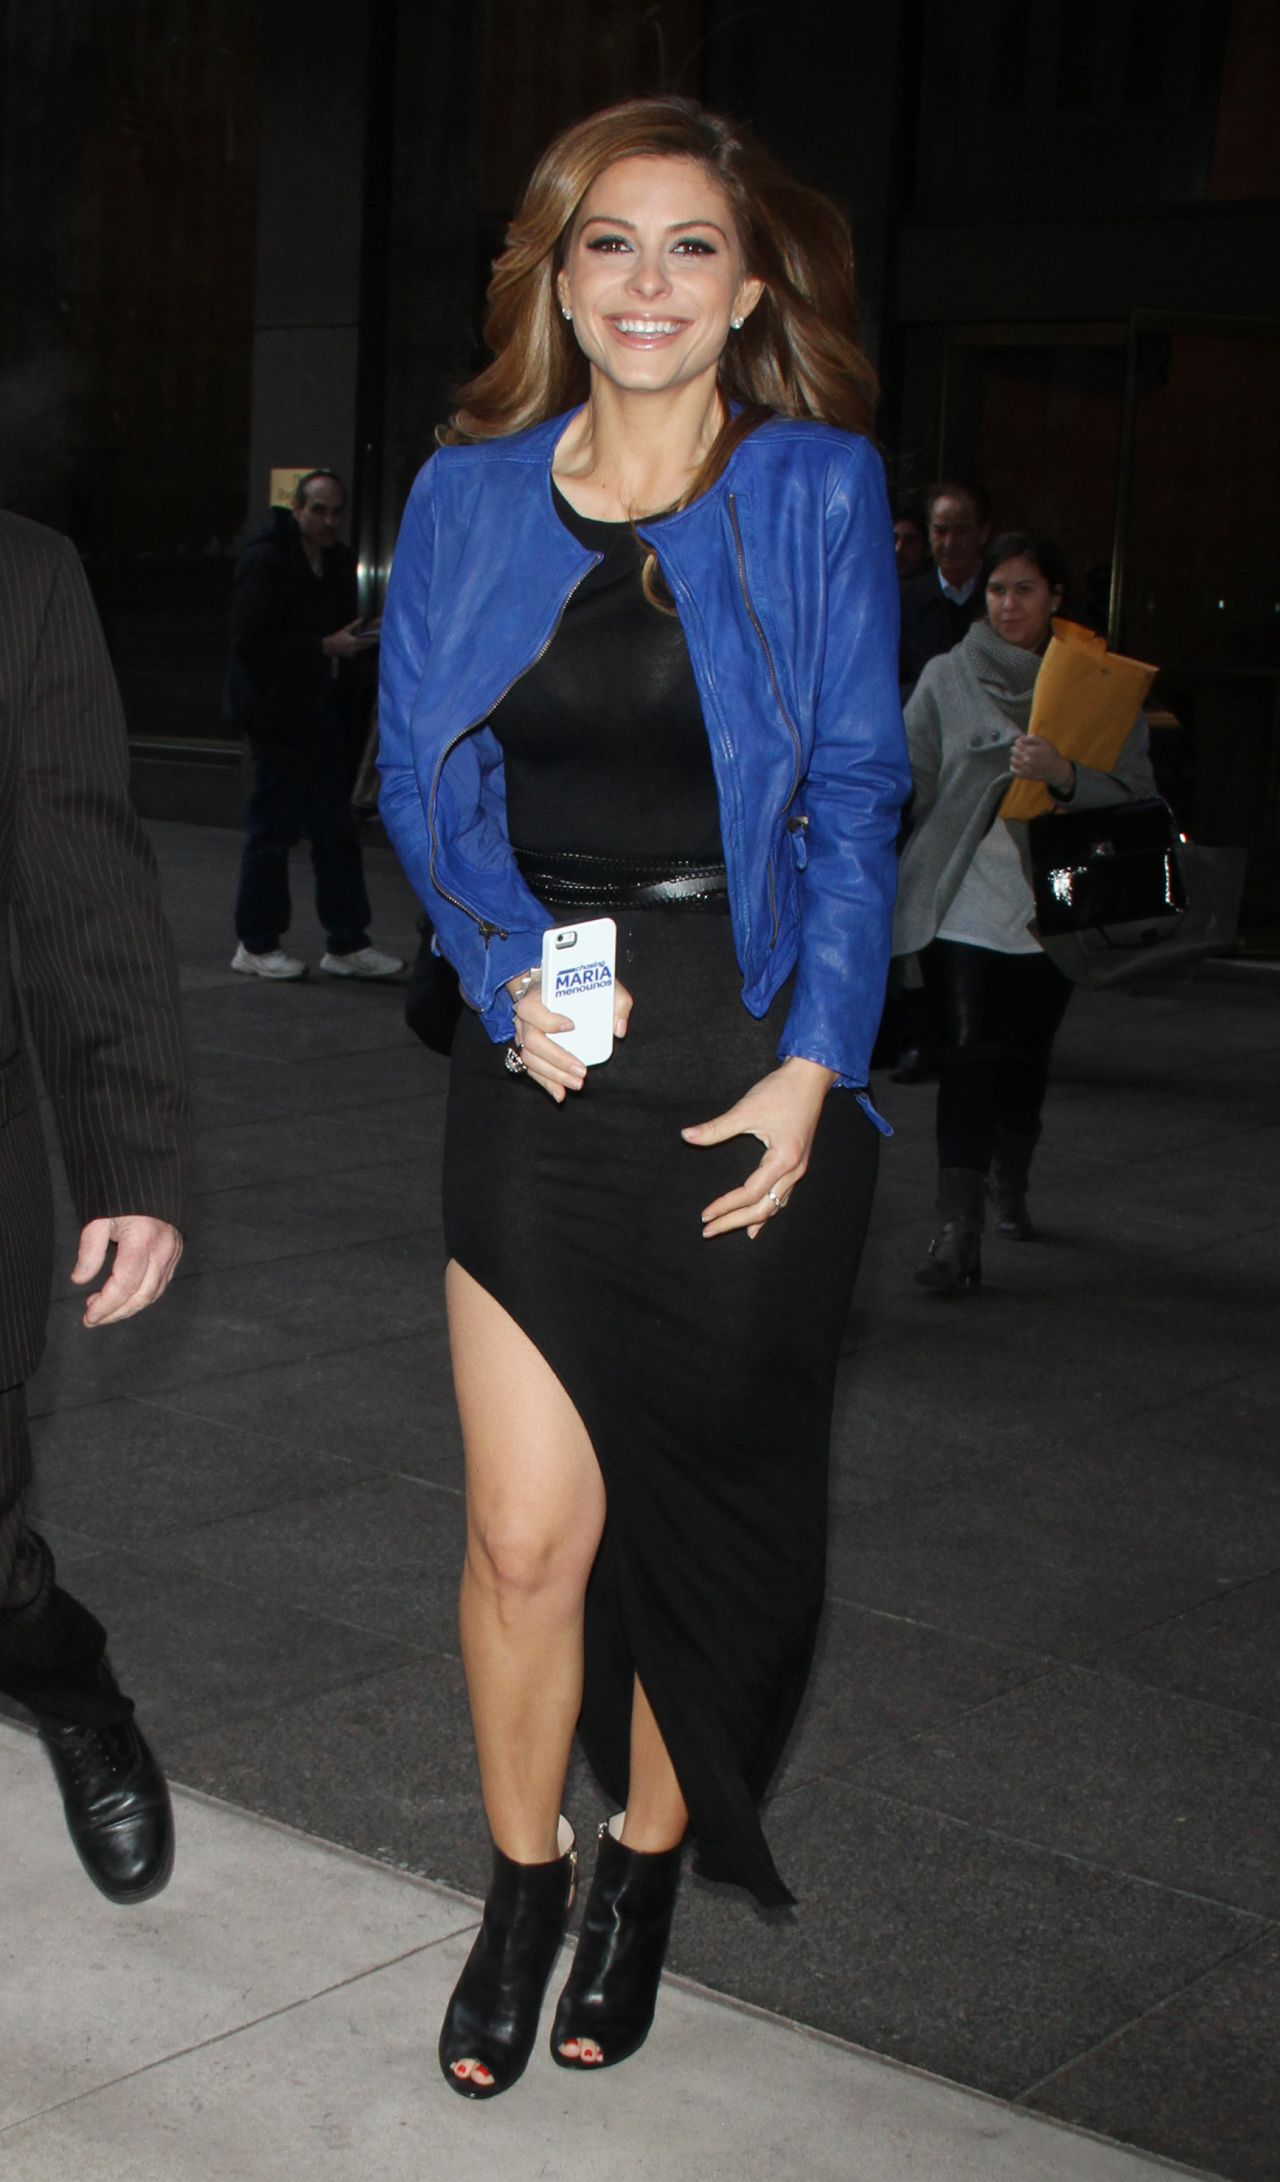 Maria Menounos Arriving at SIRIUS XM Radio in NYC - March 2014